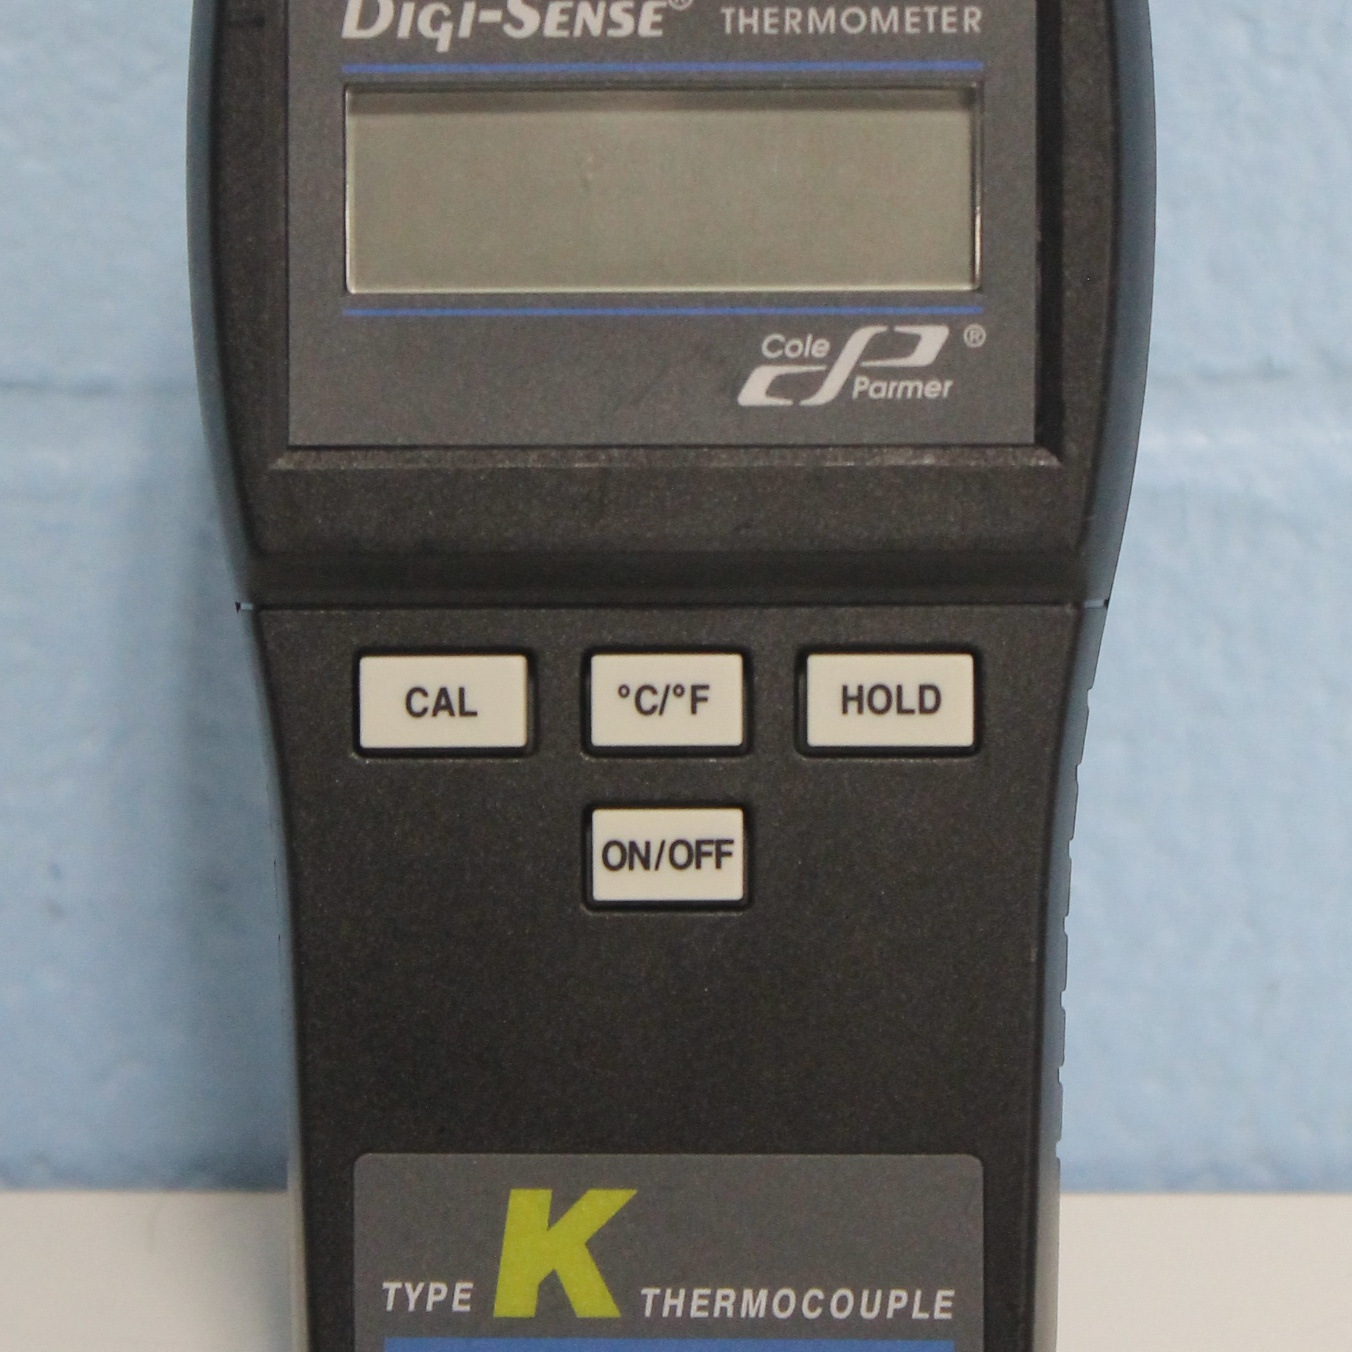 Cole-Parmer Digi-Sense type K thermocouple thermometer Model 91100-10 Image